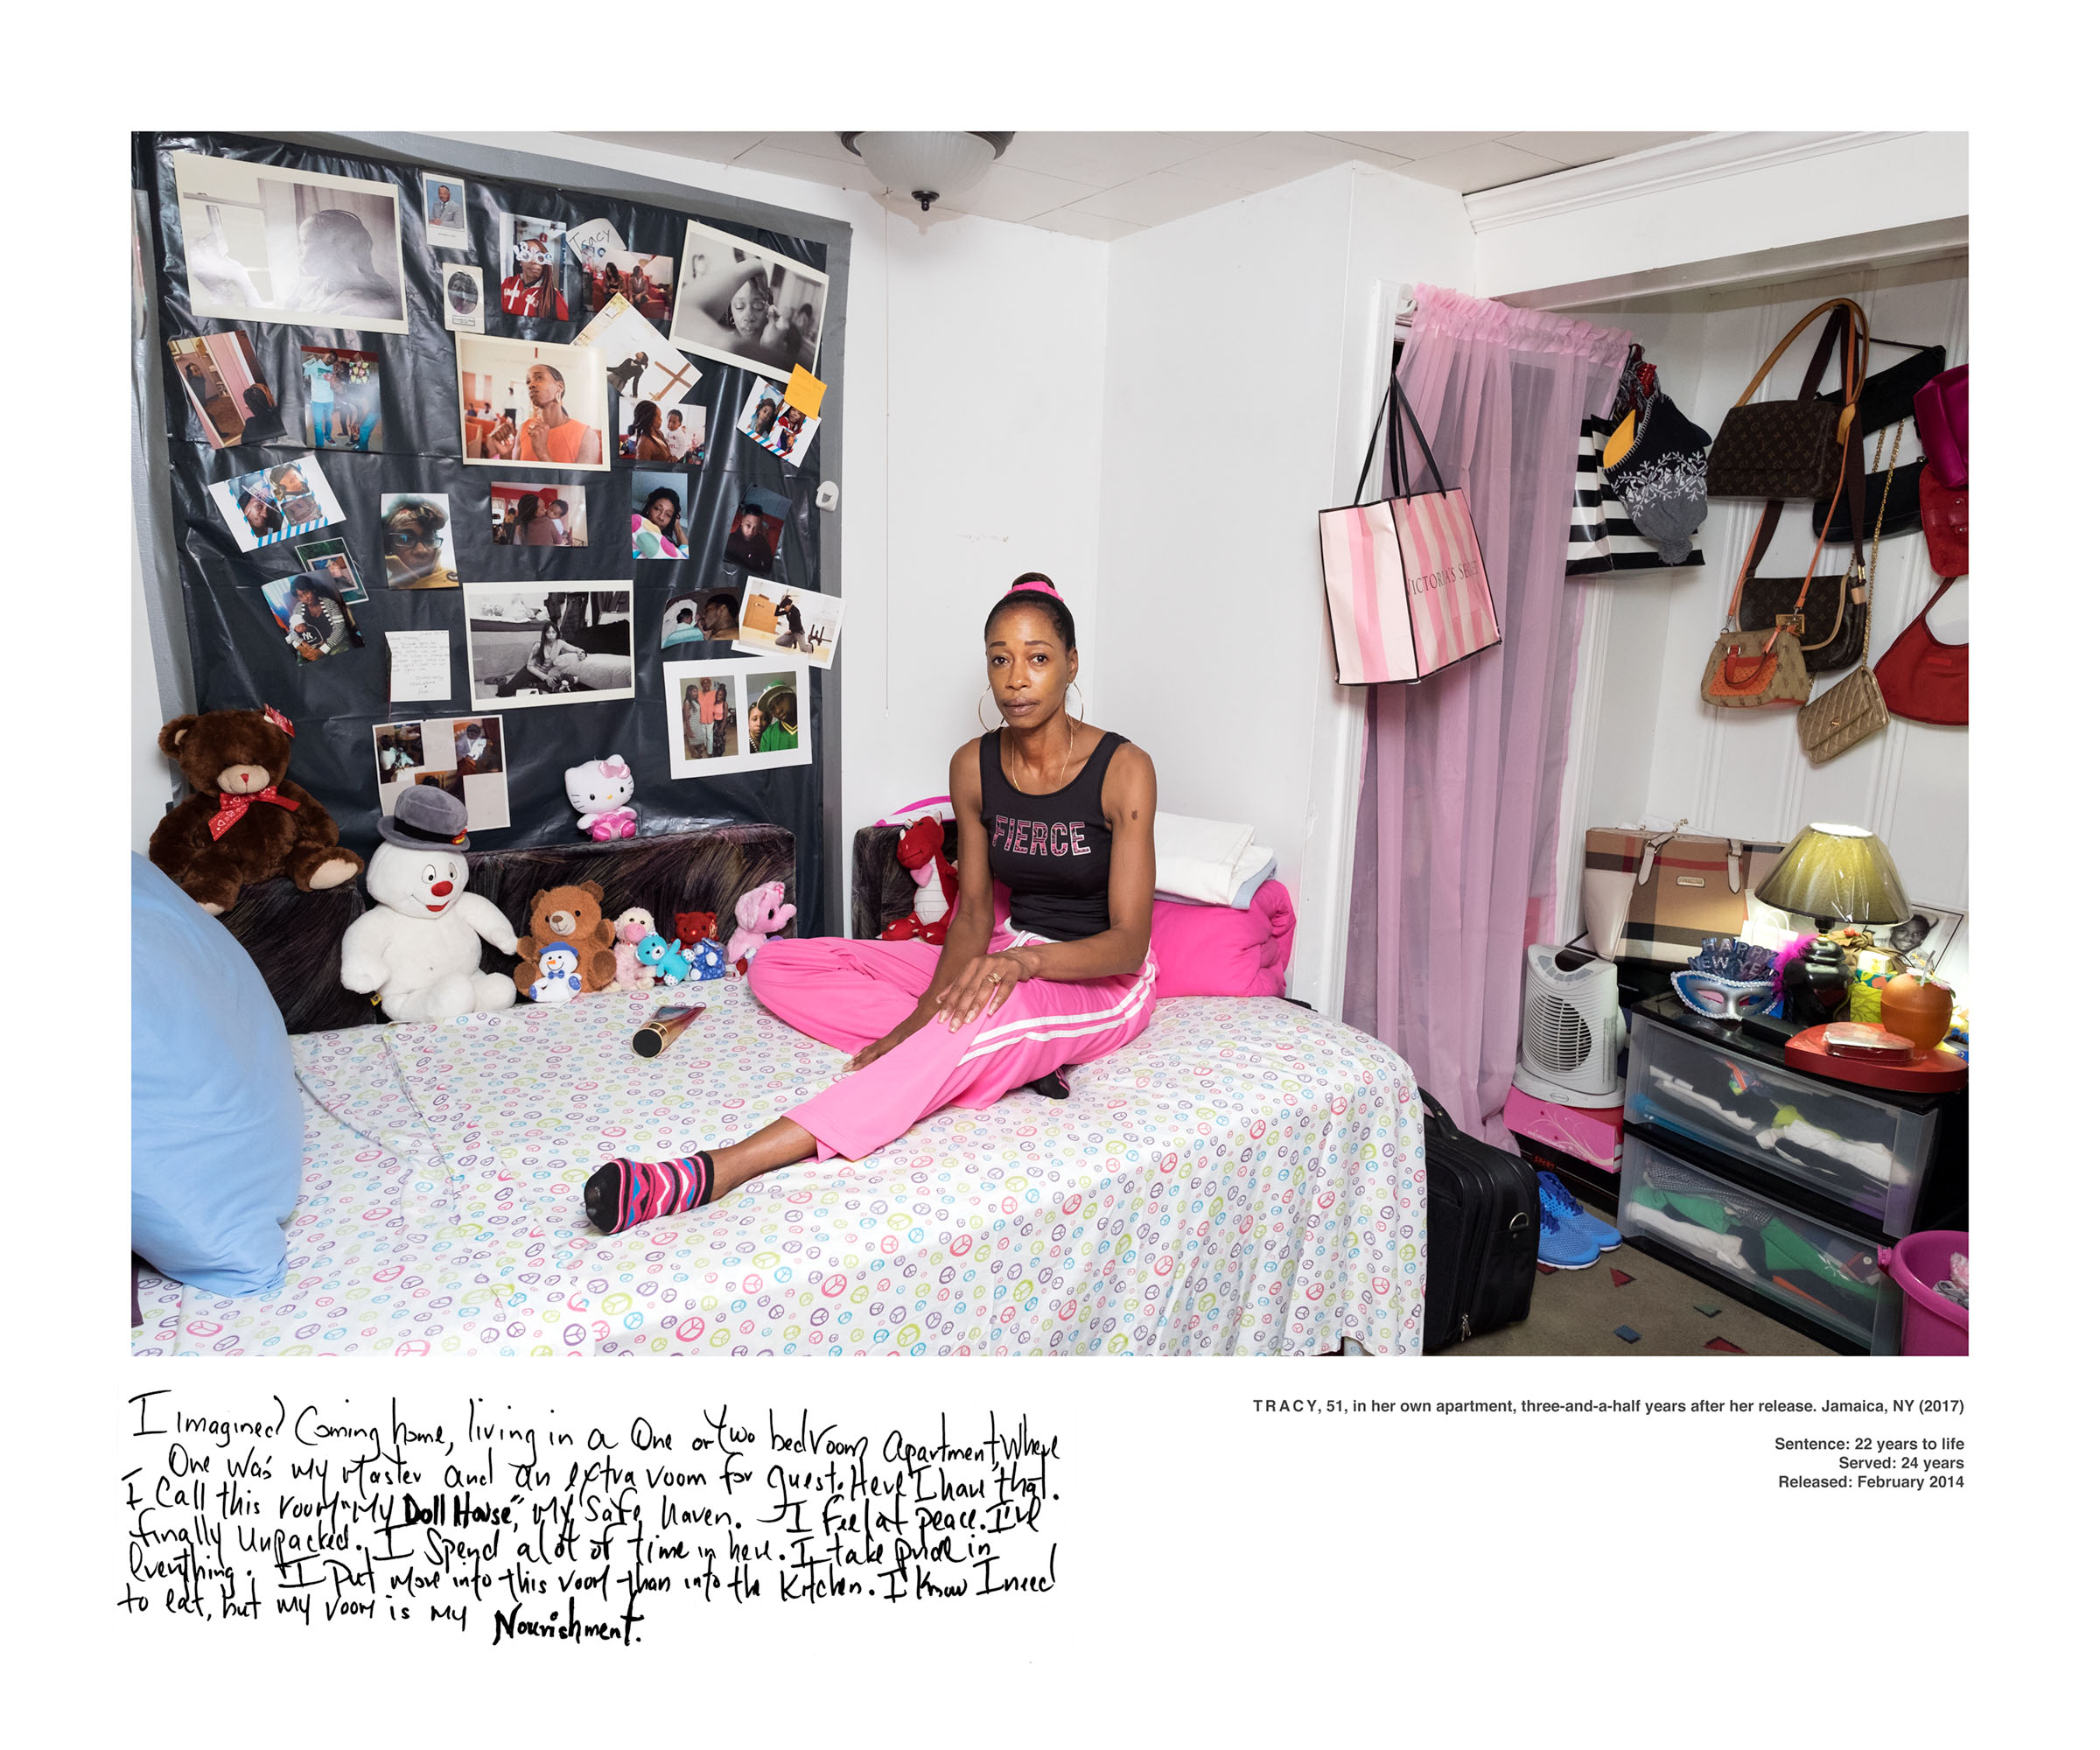 The Bedroom Project , comprises 18 portraits of formerly incarcerated women, who spent anywhere from 14 to 35 years in prison, in their bedrooms